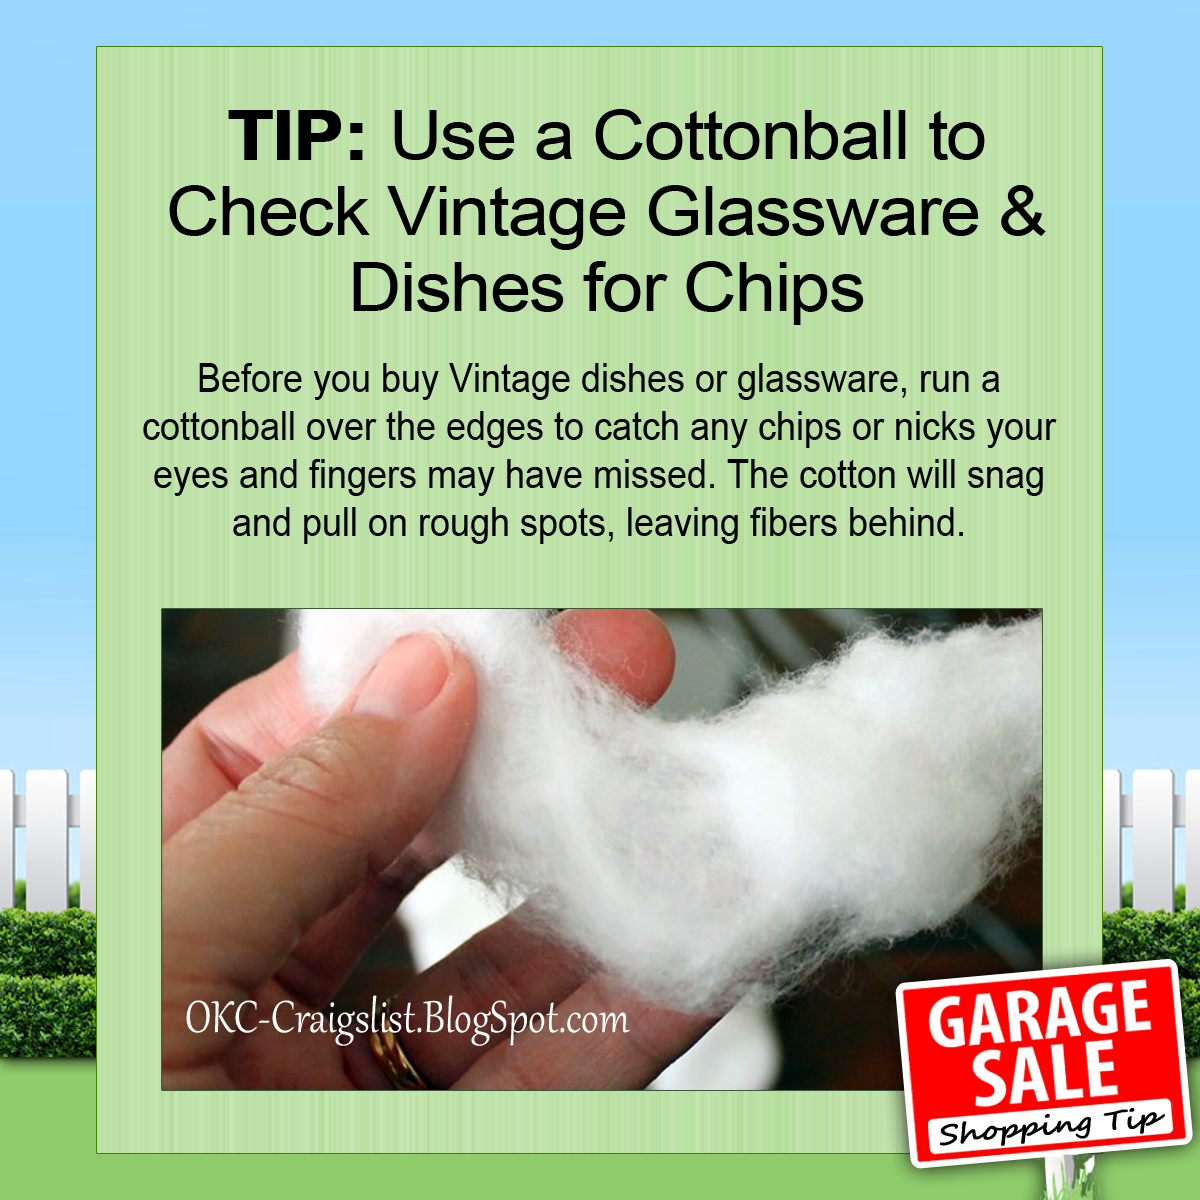 GARAGE SALE TIP: Don't Buy Vintage Dishes or Glassware Without Doing This!